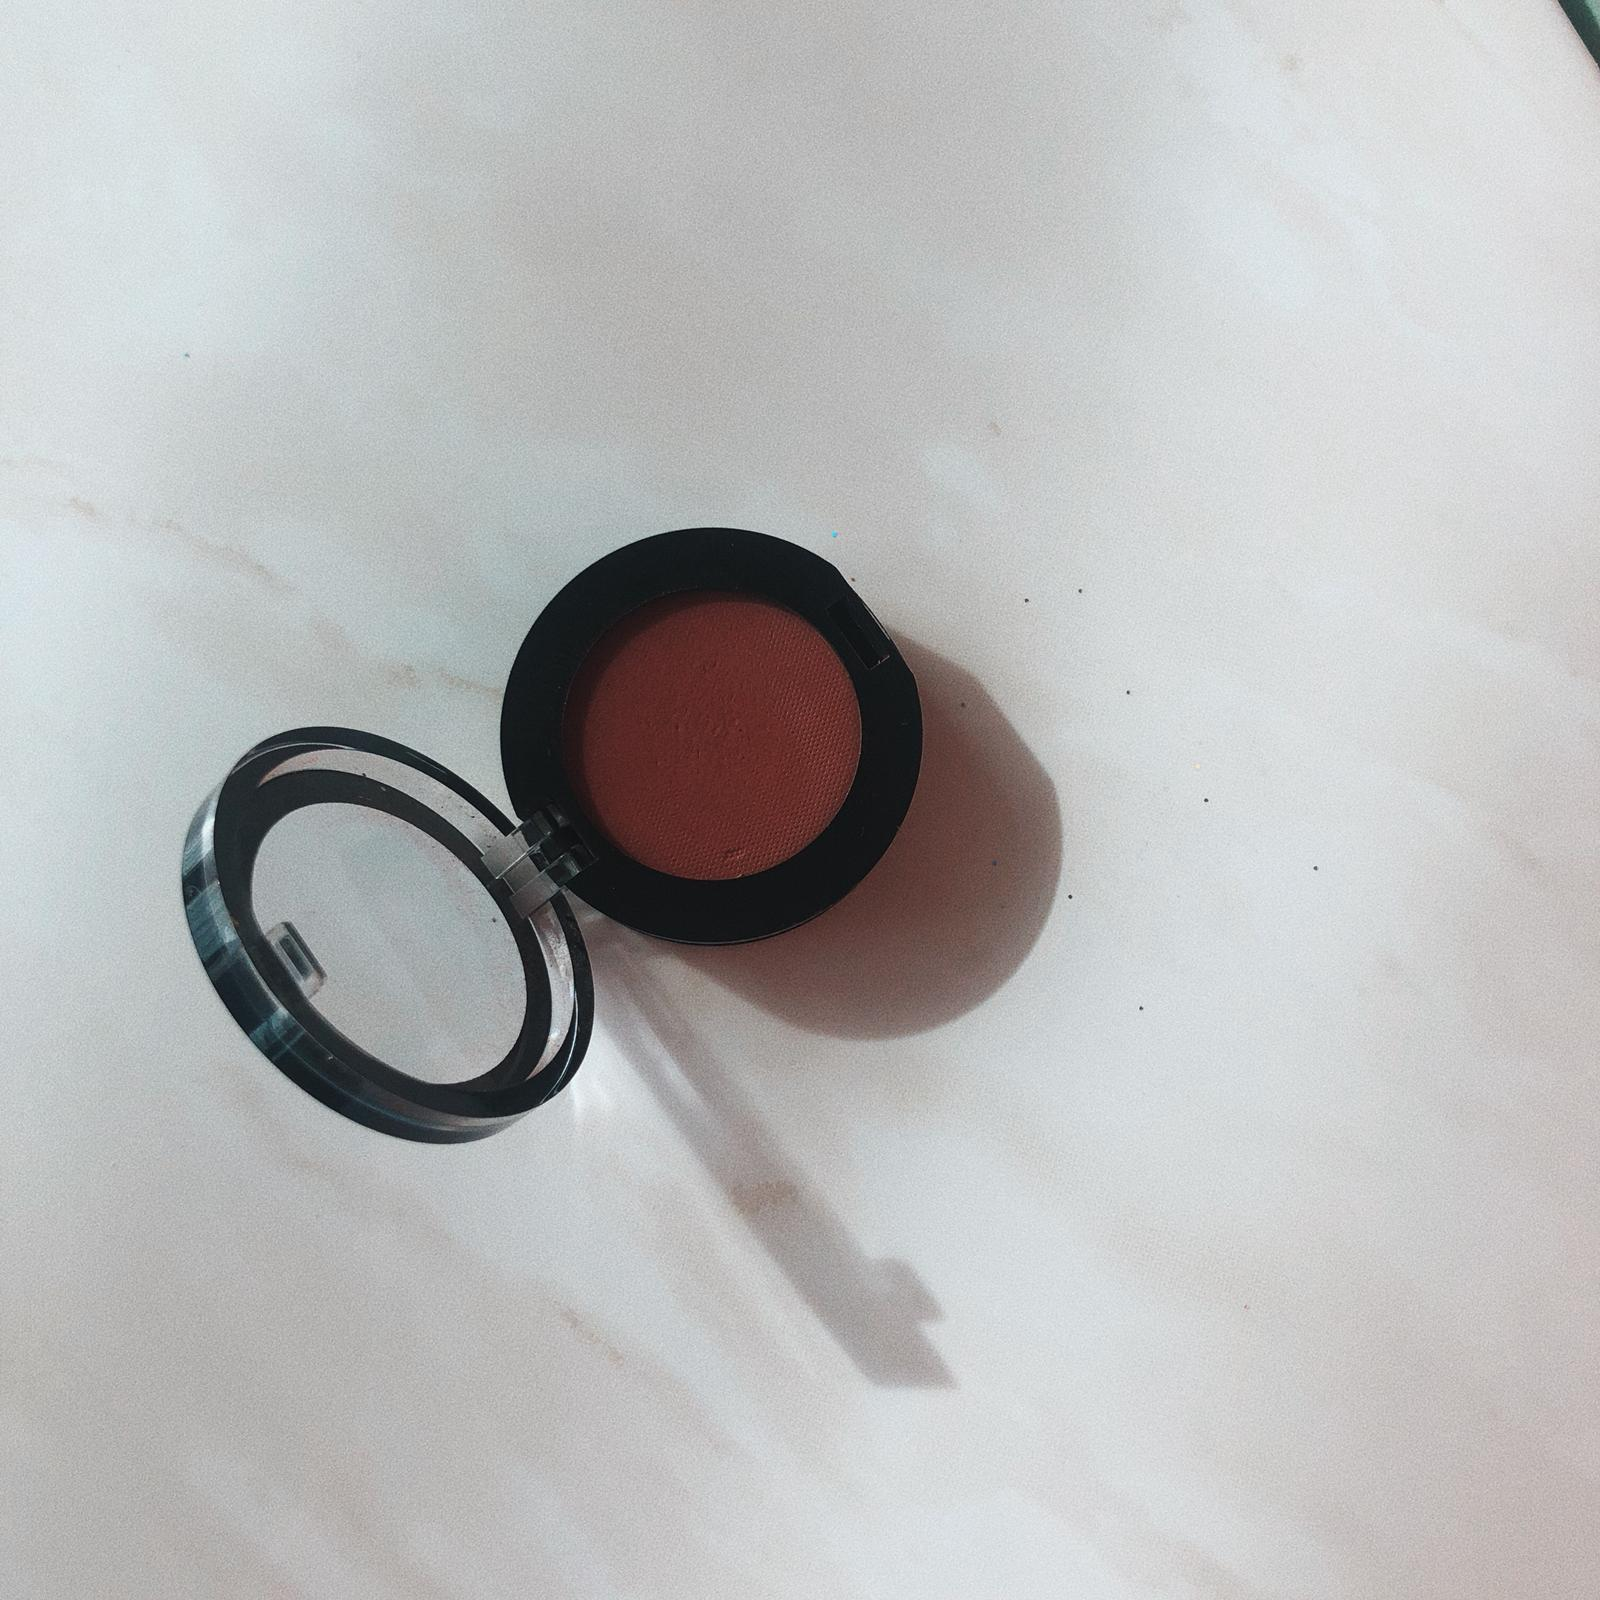 """I LIKE TO SHOP NEW EYESHADOWS EVEN THOUGH I THINK I HAVE ENOUGH. SO LAST TIME I WAS SHOPPING I PICKED UP THIS ONE: MEET """"MORNING SUNRISE"""" - THE     SEPHORA COLORFUL EYESHADOW   IS AMAZING TO APPLY AND LASTS!!! AND I LOVE THE SHADE SO MUCH. - T"""